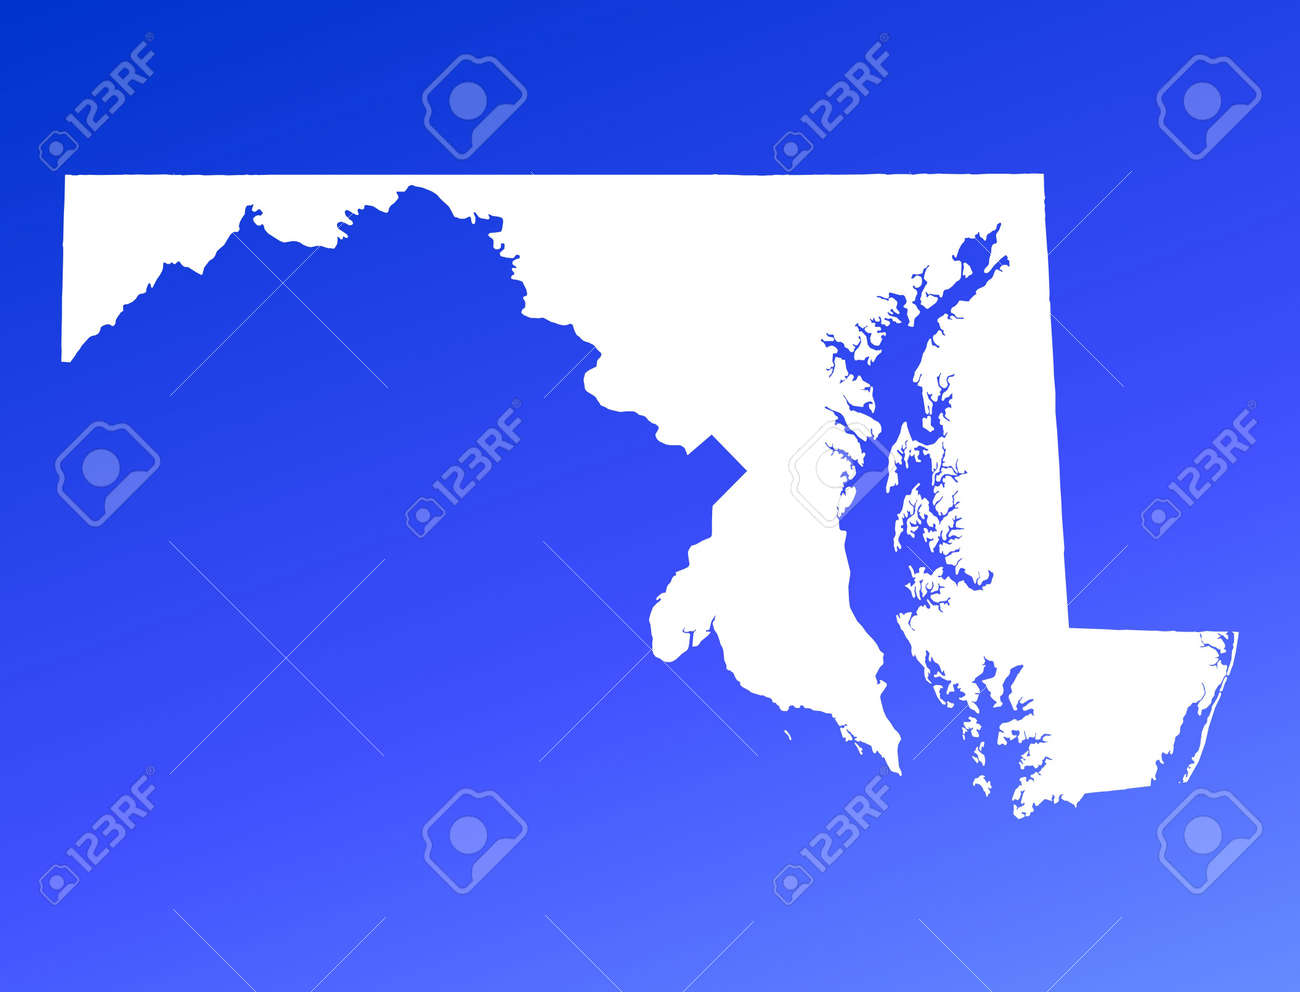 Marylandusa Map On Blue Gradient Background High Resolution Where Is Maryland In Usa Map